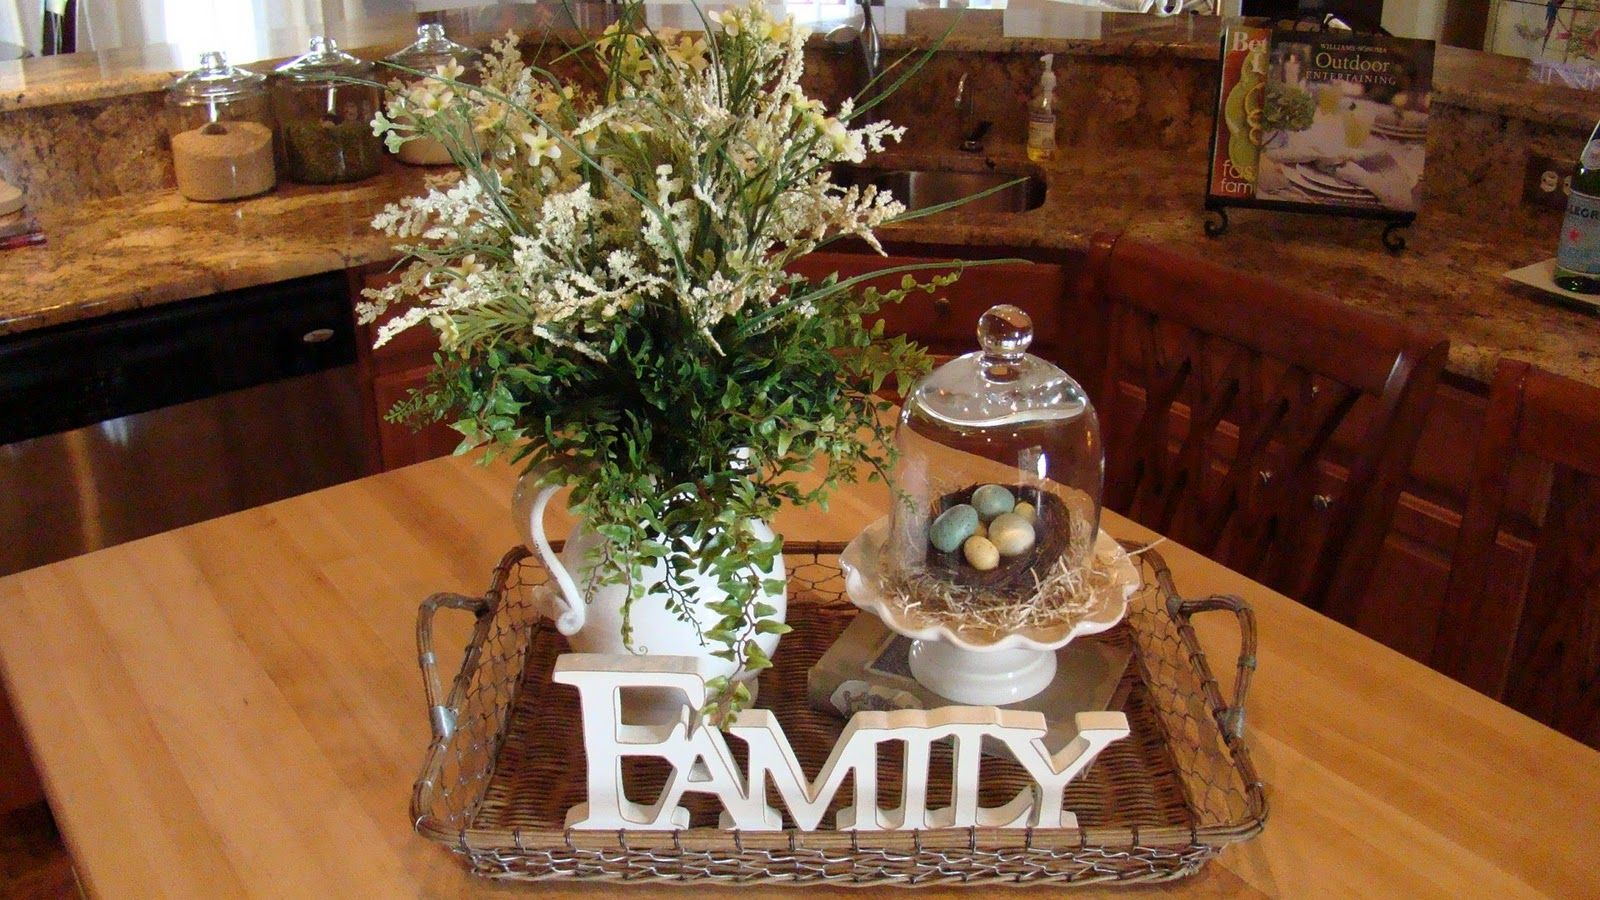 Adventures In Decorating Spring Has Hit The Kitchen Kitchen Table Centerpiece Tray Decor Kitchen Table Decor